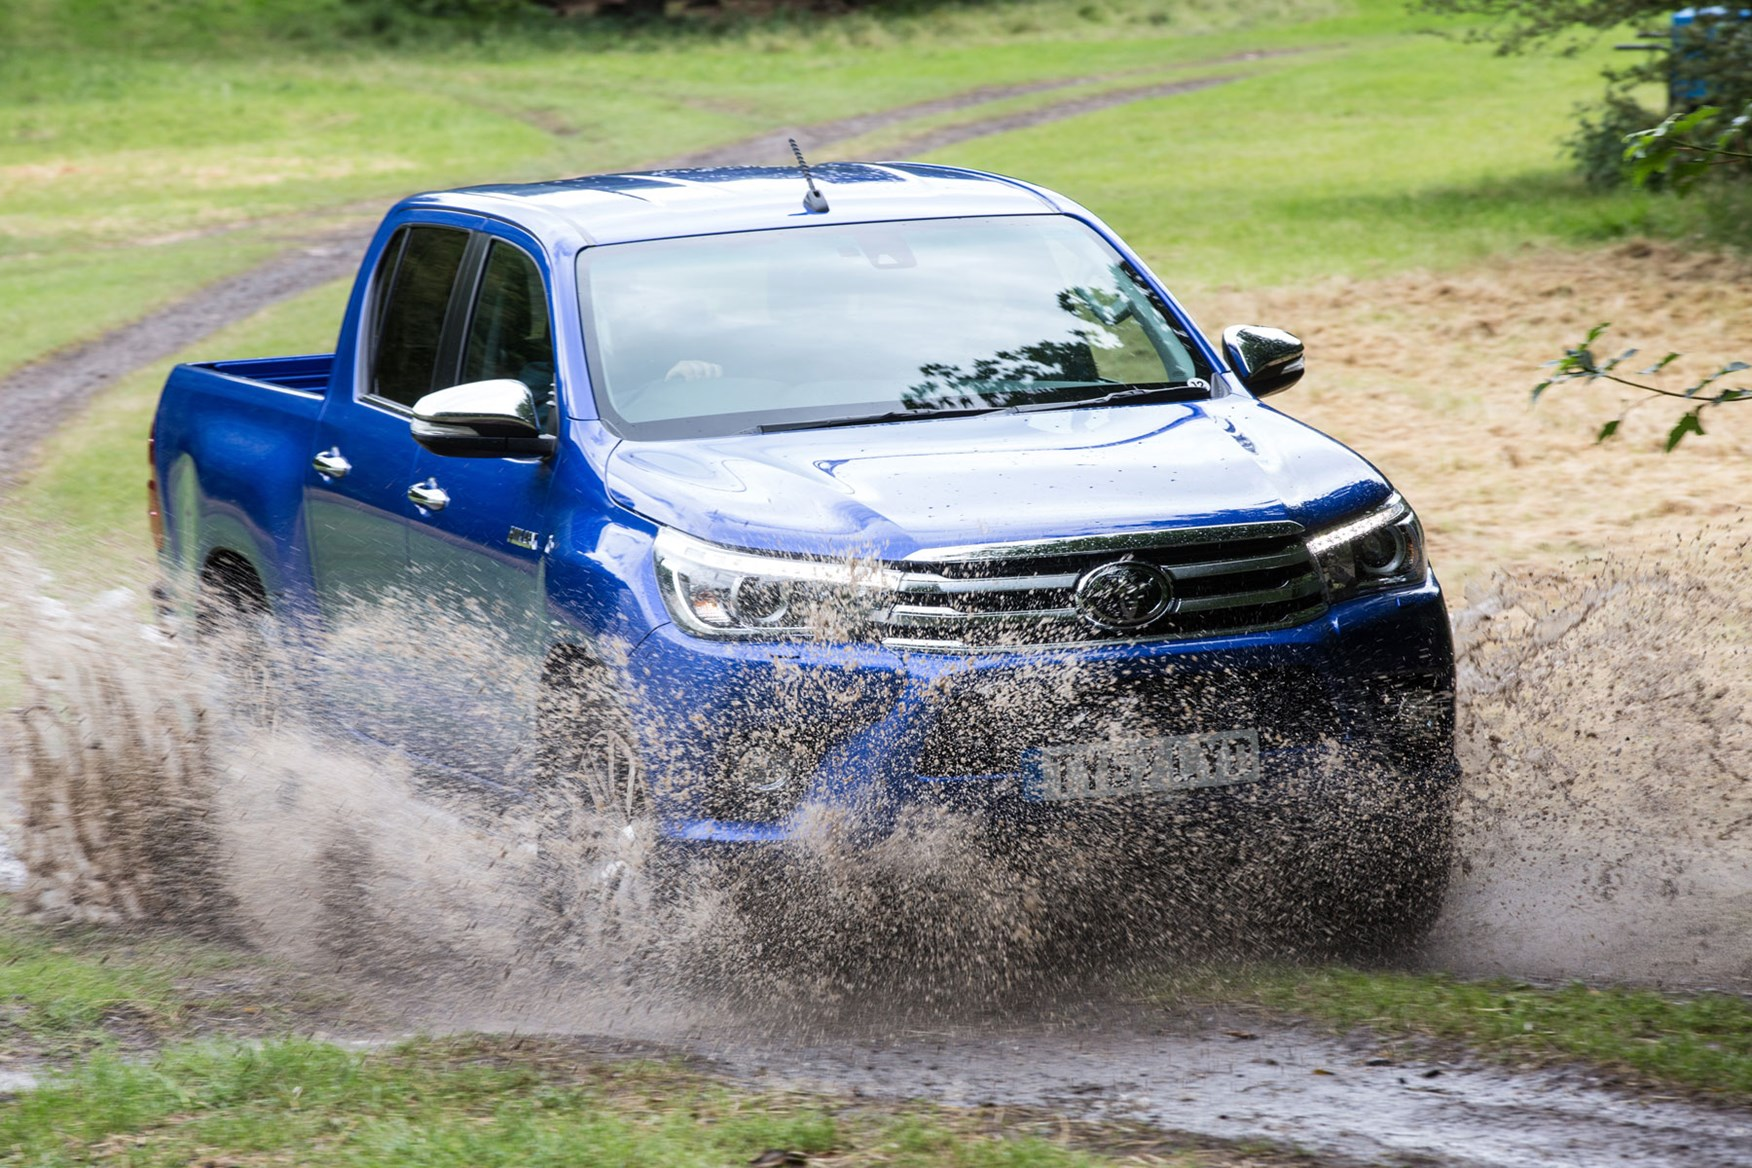 Toyota Hilux review - front view, splashing through water, blue